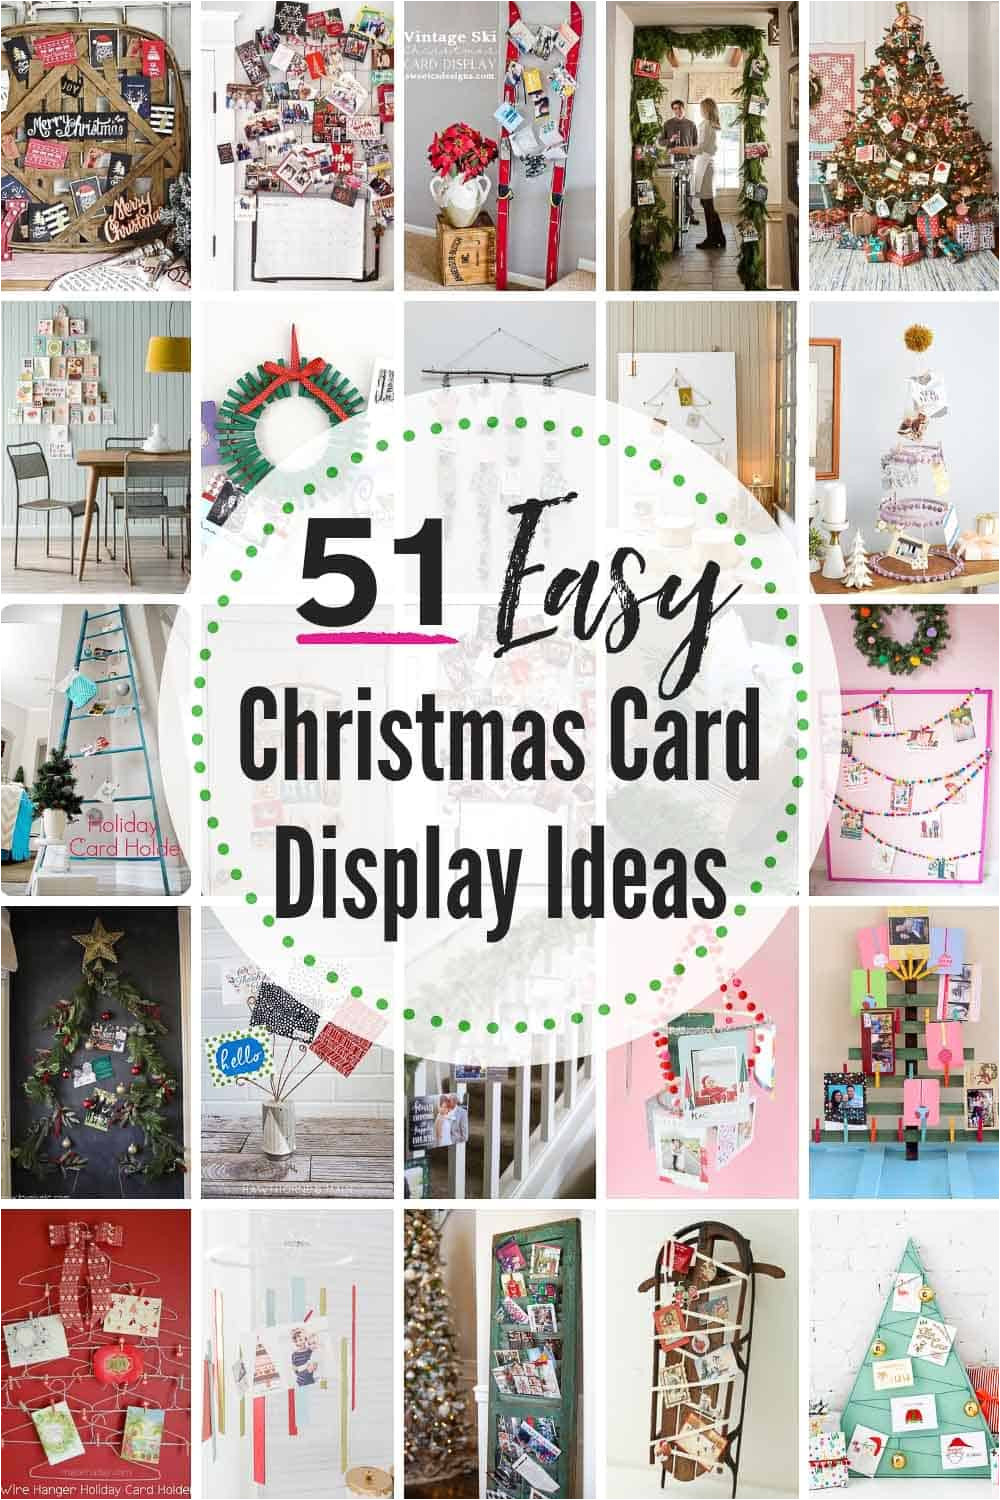 50 easy christmas card display ideas 2 jpg